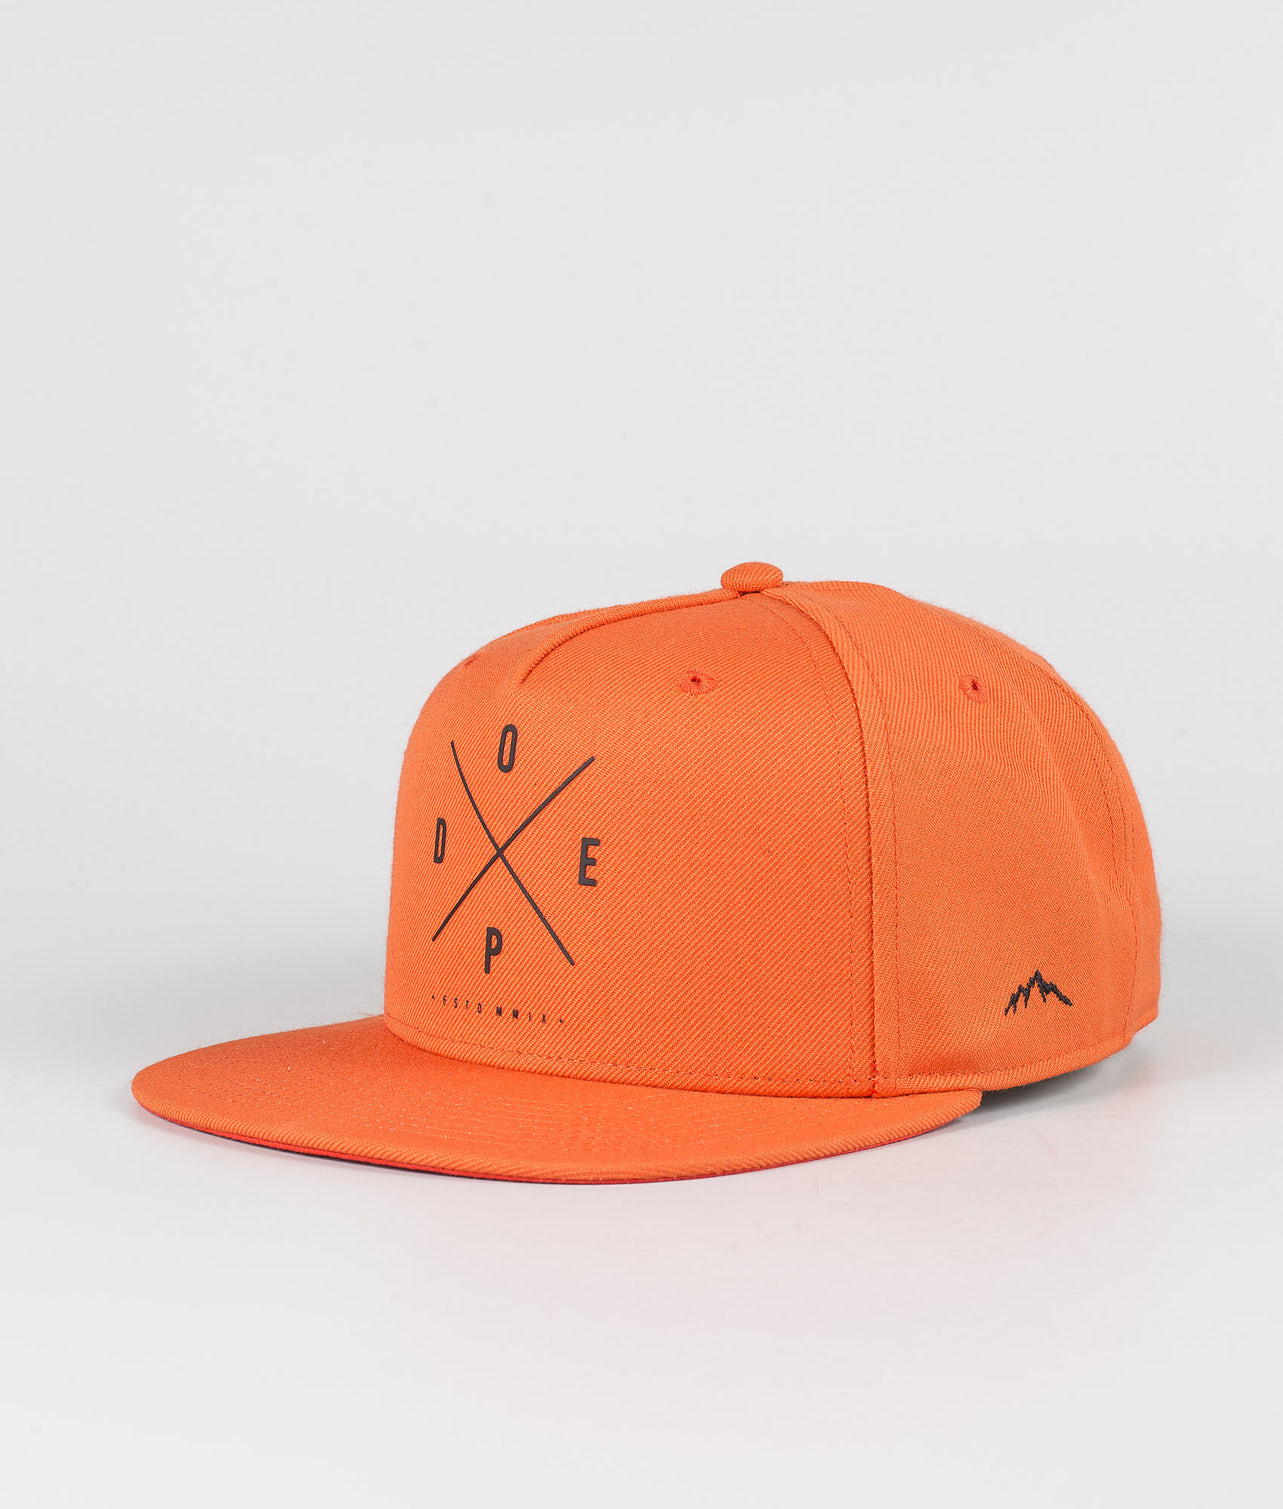 Dope 2X-up Caps Orange